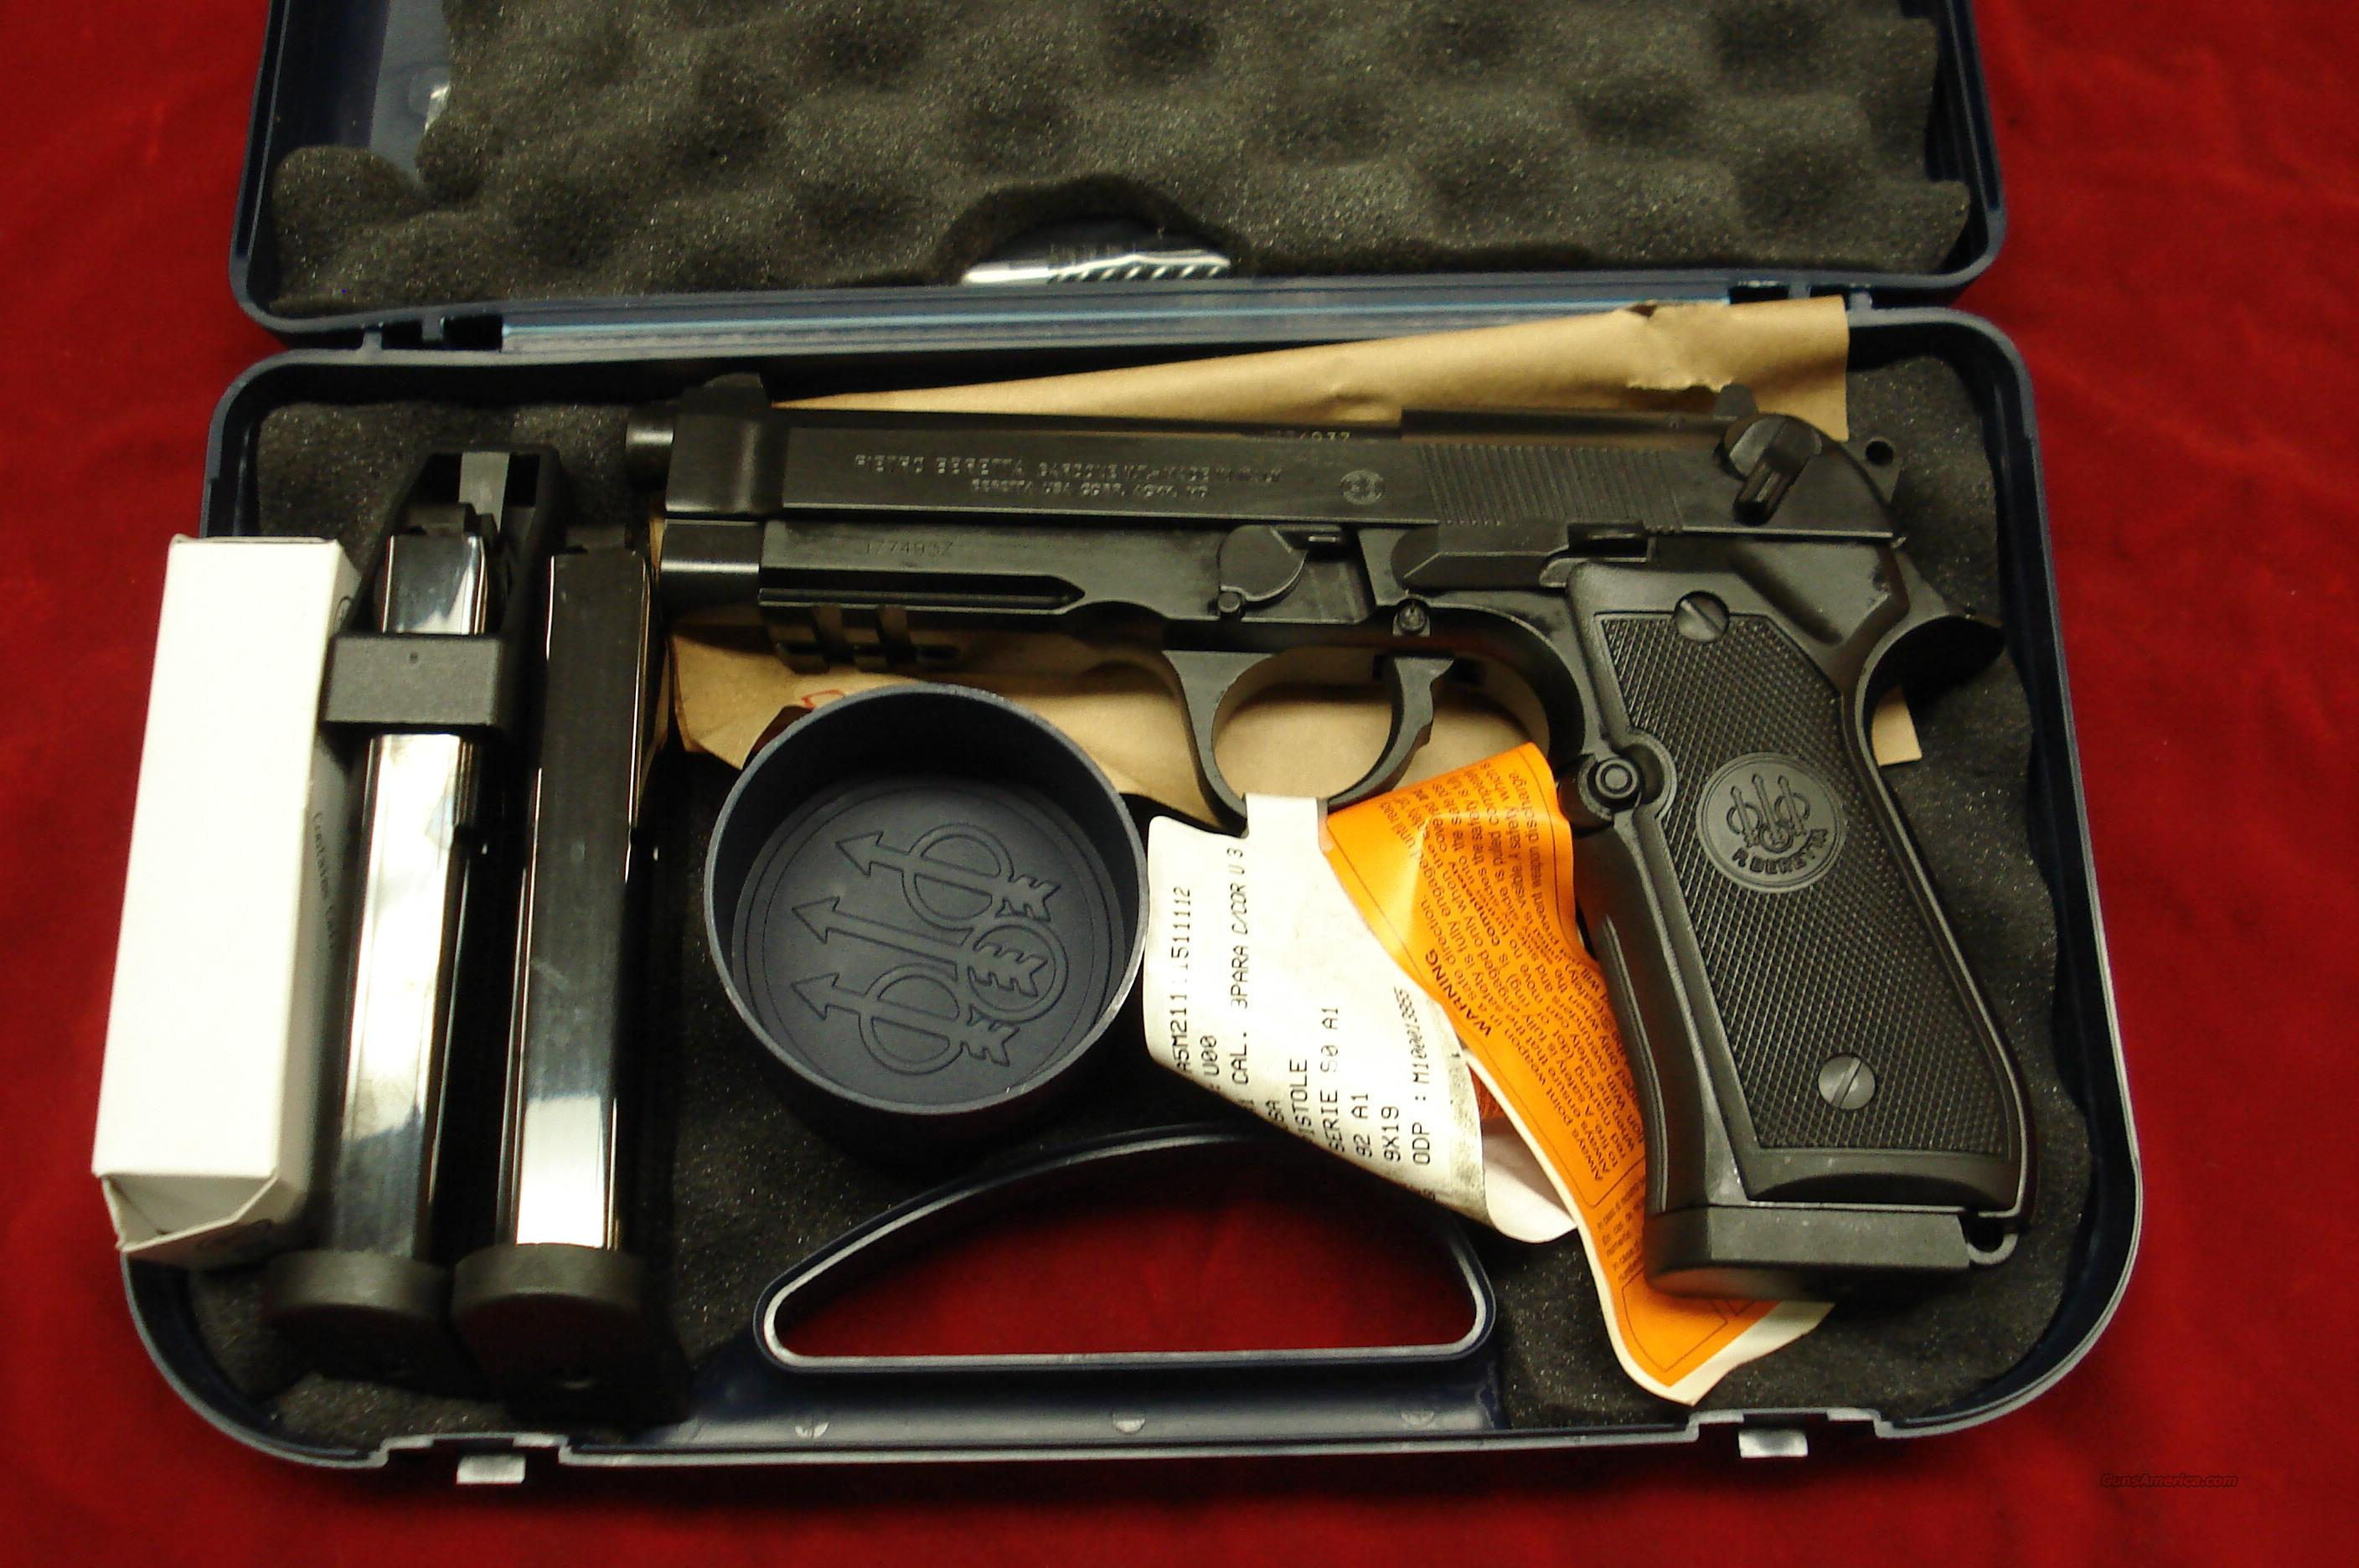 BERETTA 92A1 9MM CAL. NEW IN THE BOX  Guns > Pistols > Beretta Pistols > Model 92 Series